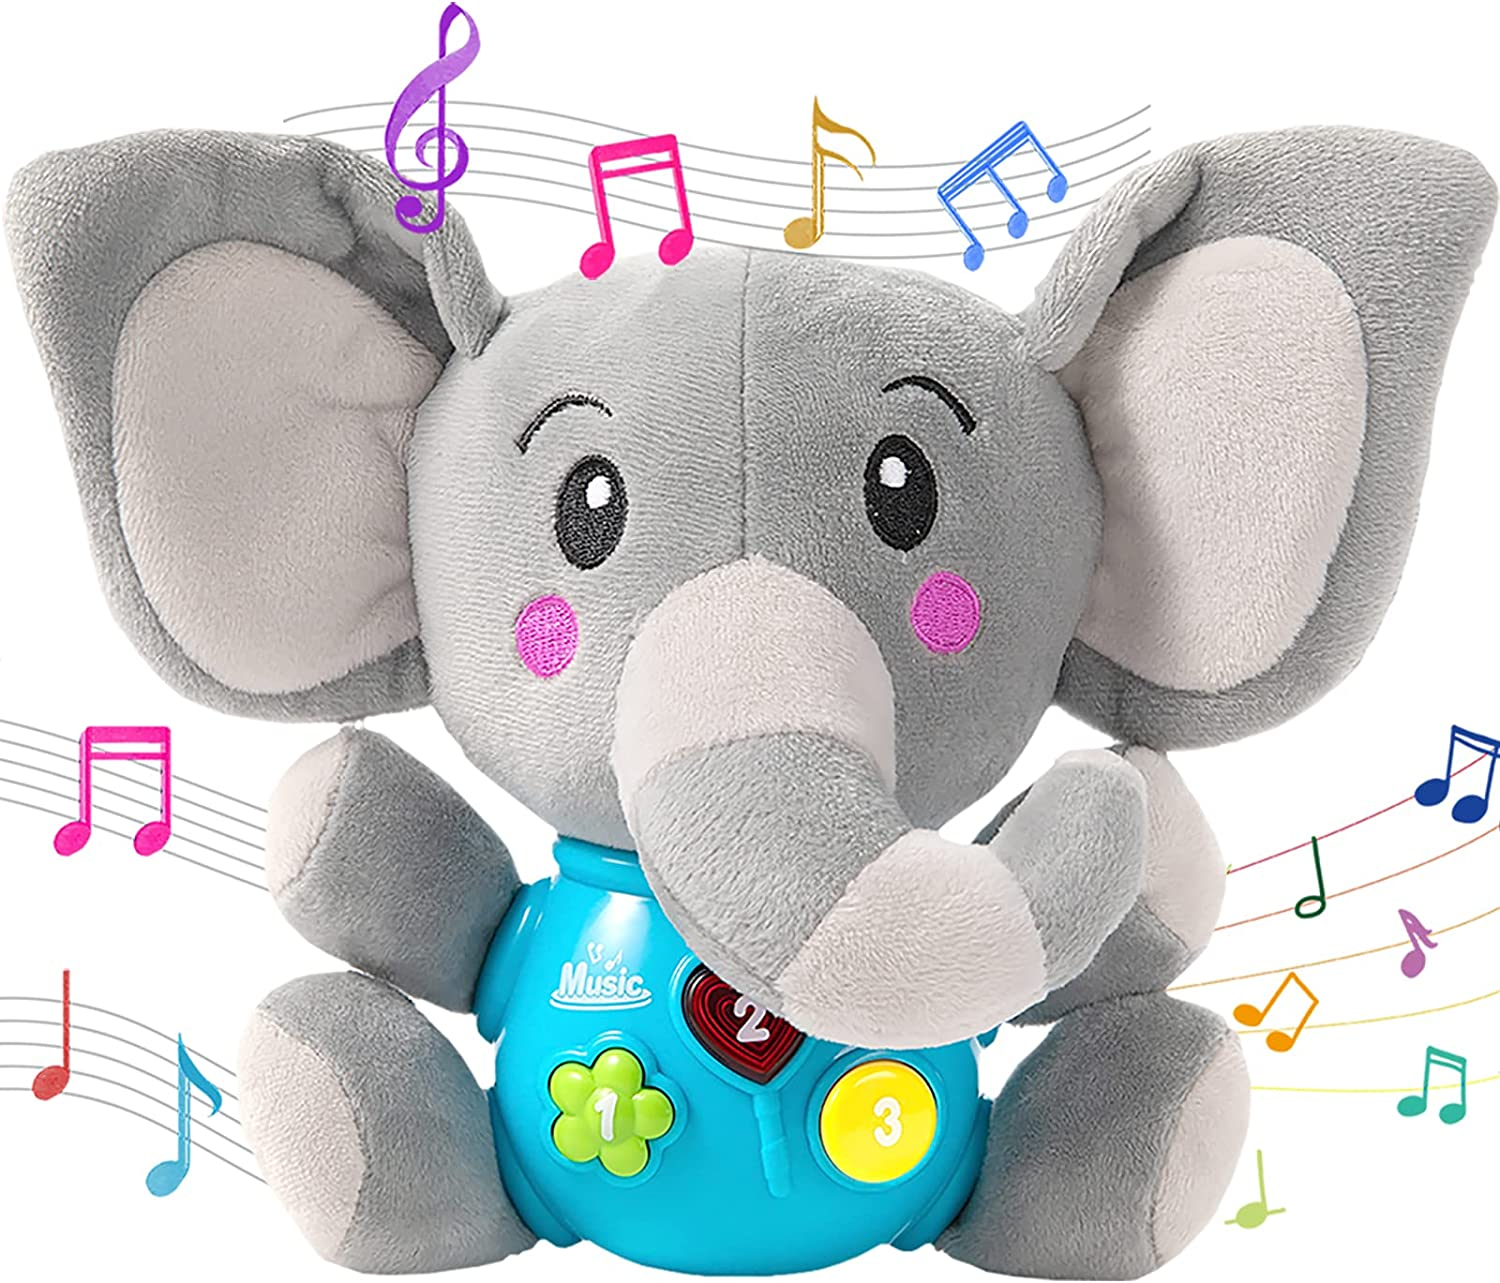 LITTLESMET Plush Elephant Baby Toys, Stuffed Animal Baby Musical Plush Toy for Babies Infant, Light Up Baby Musical Toys Baby Gifts for 0, 3, 6, 9, 12 Months, Girls, Boys ,Toddlers